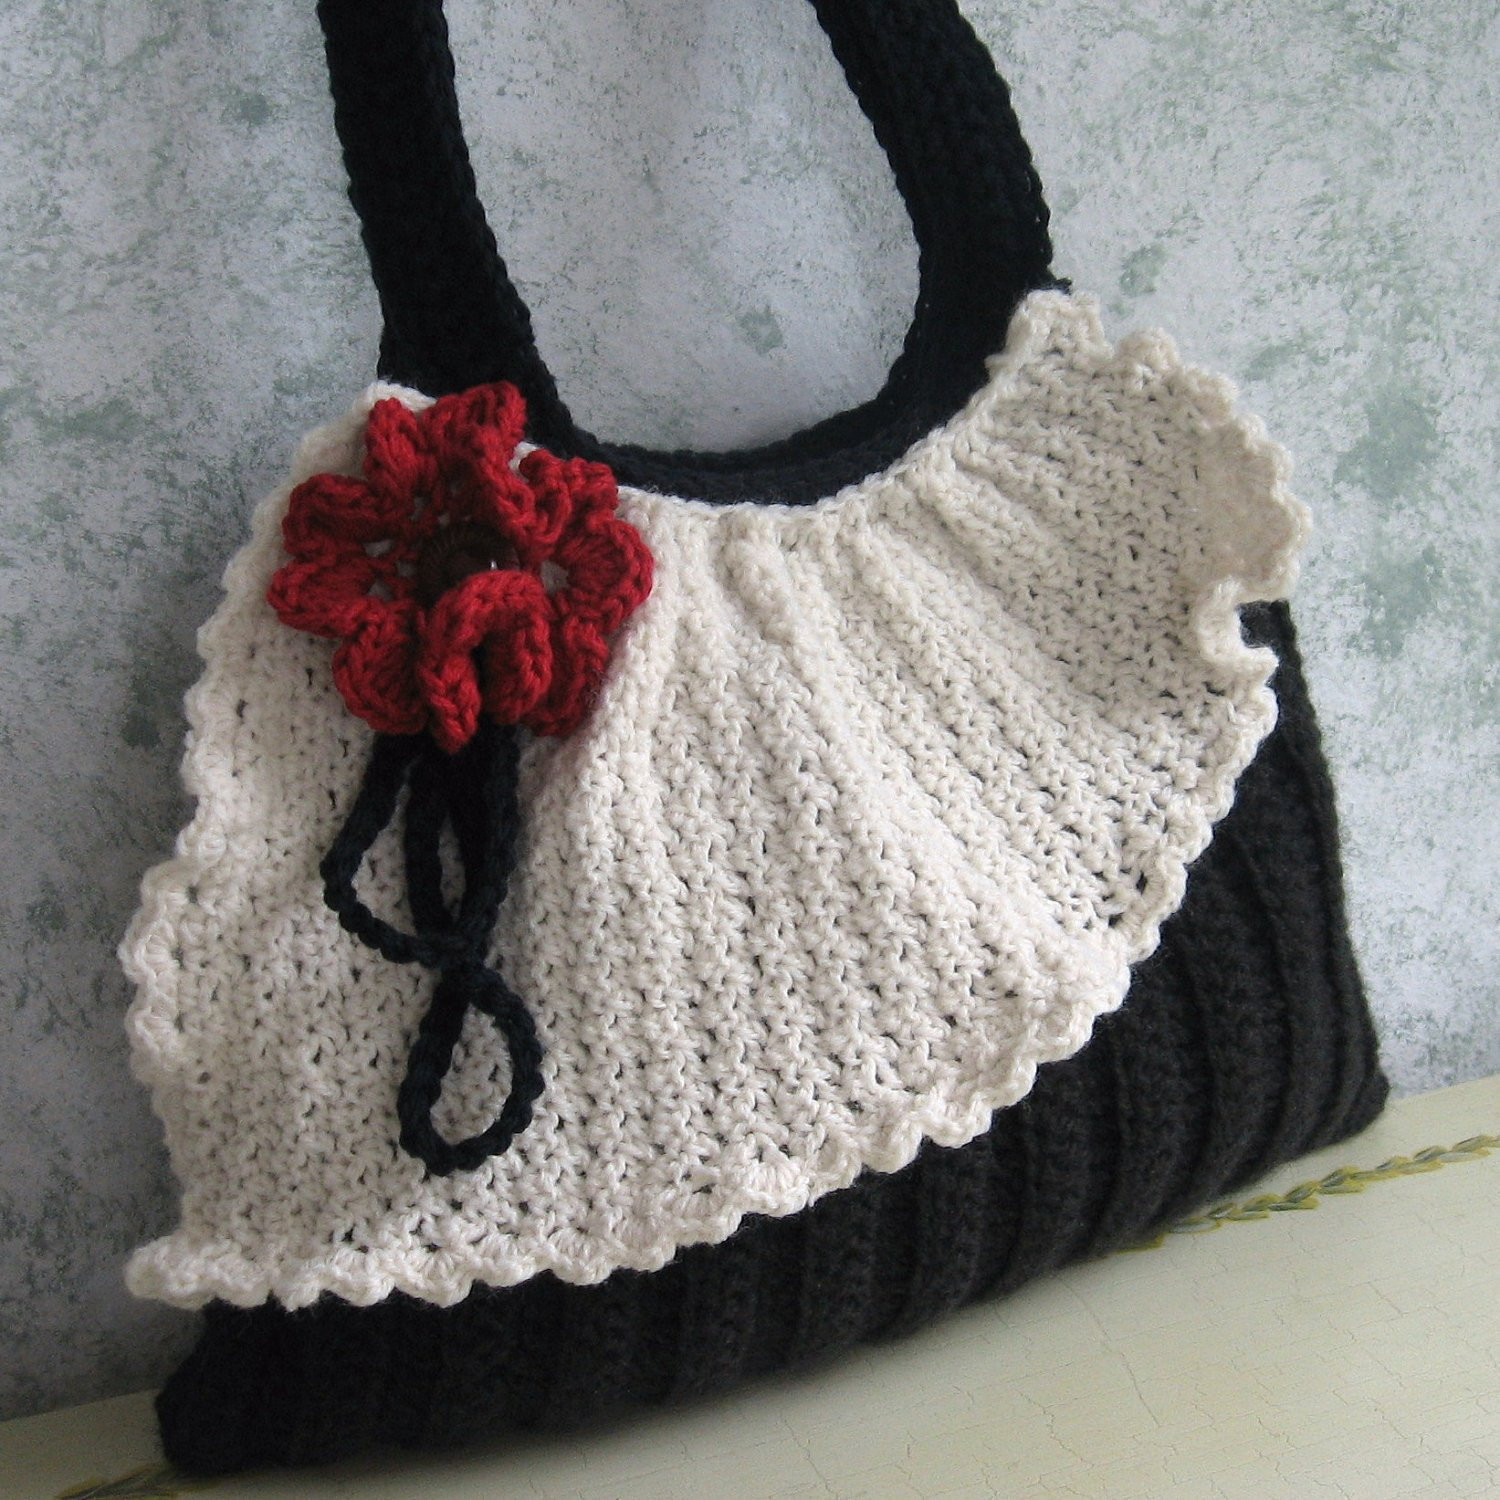 Crochet Purse Pattern Pleated Bag With Drape And Flower Trim